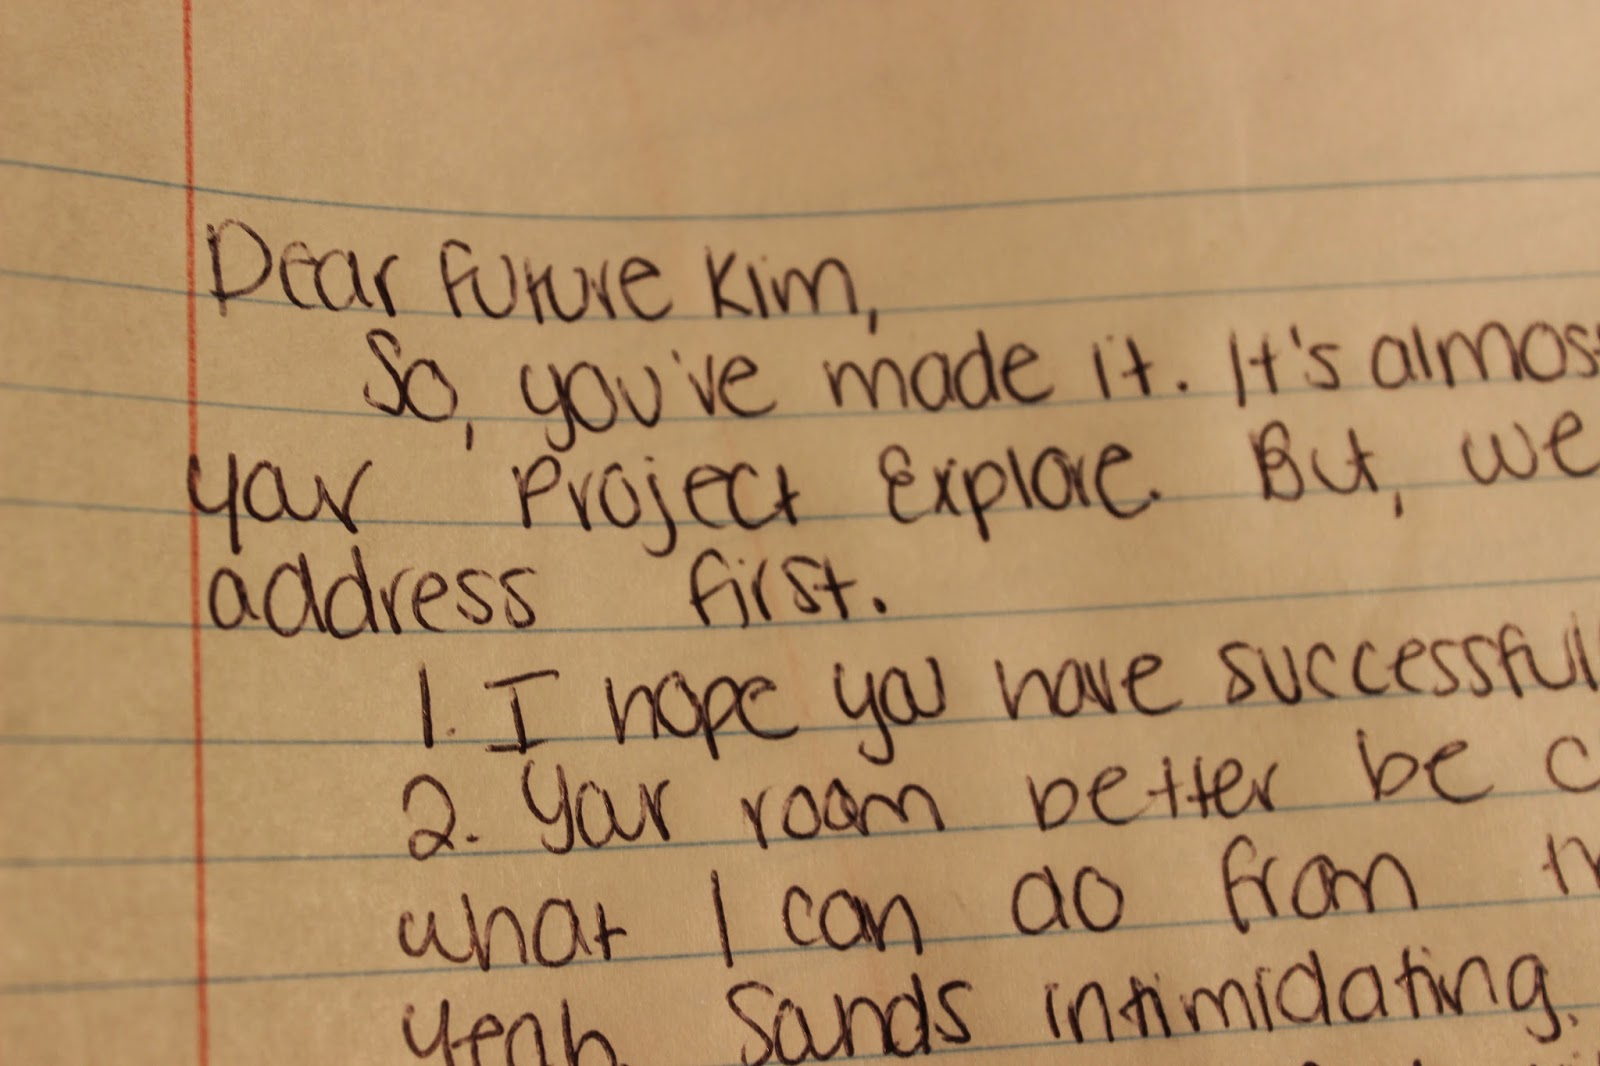 Project 52 Task 2 pleted Write A Letter to Your Future Self